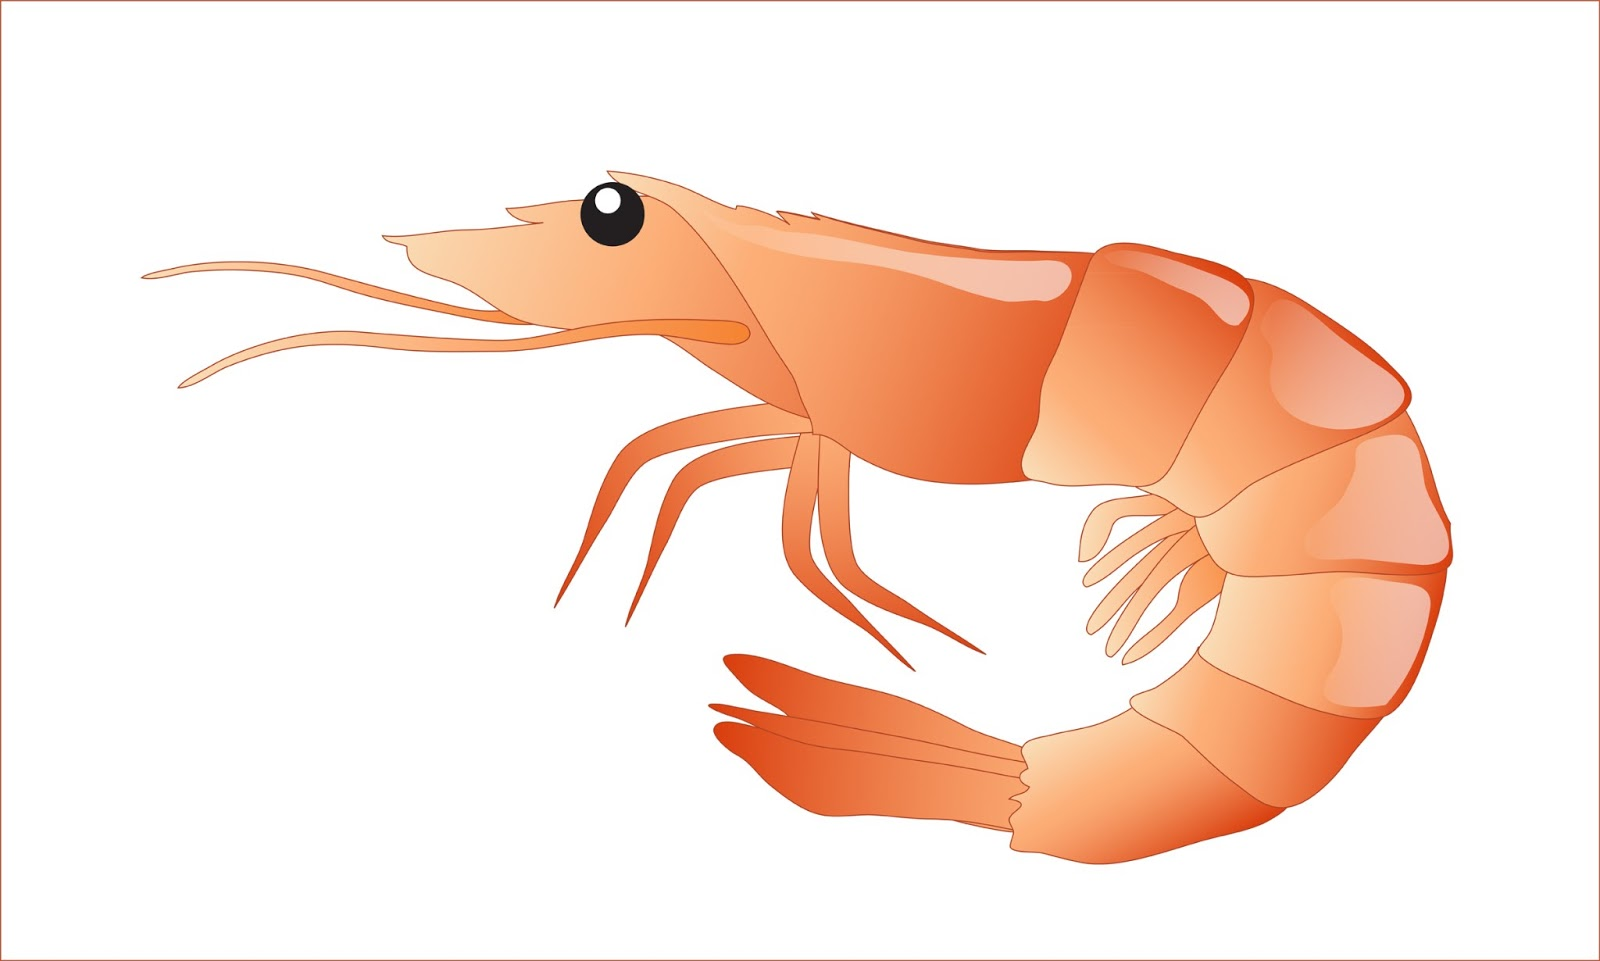 Free Shrimp Clipart 1 Page Of Public Dom-Free shrimp clipart 1 page of public domain clip art image-7